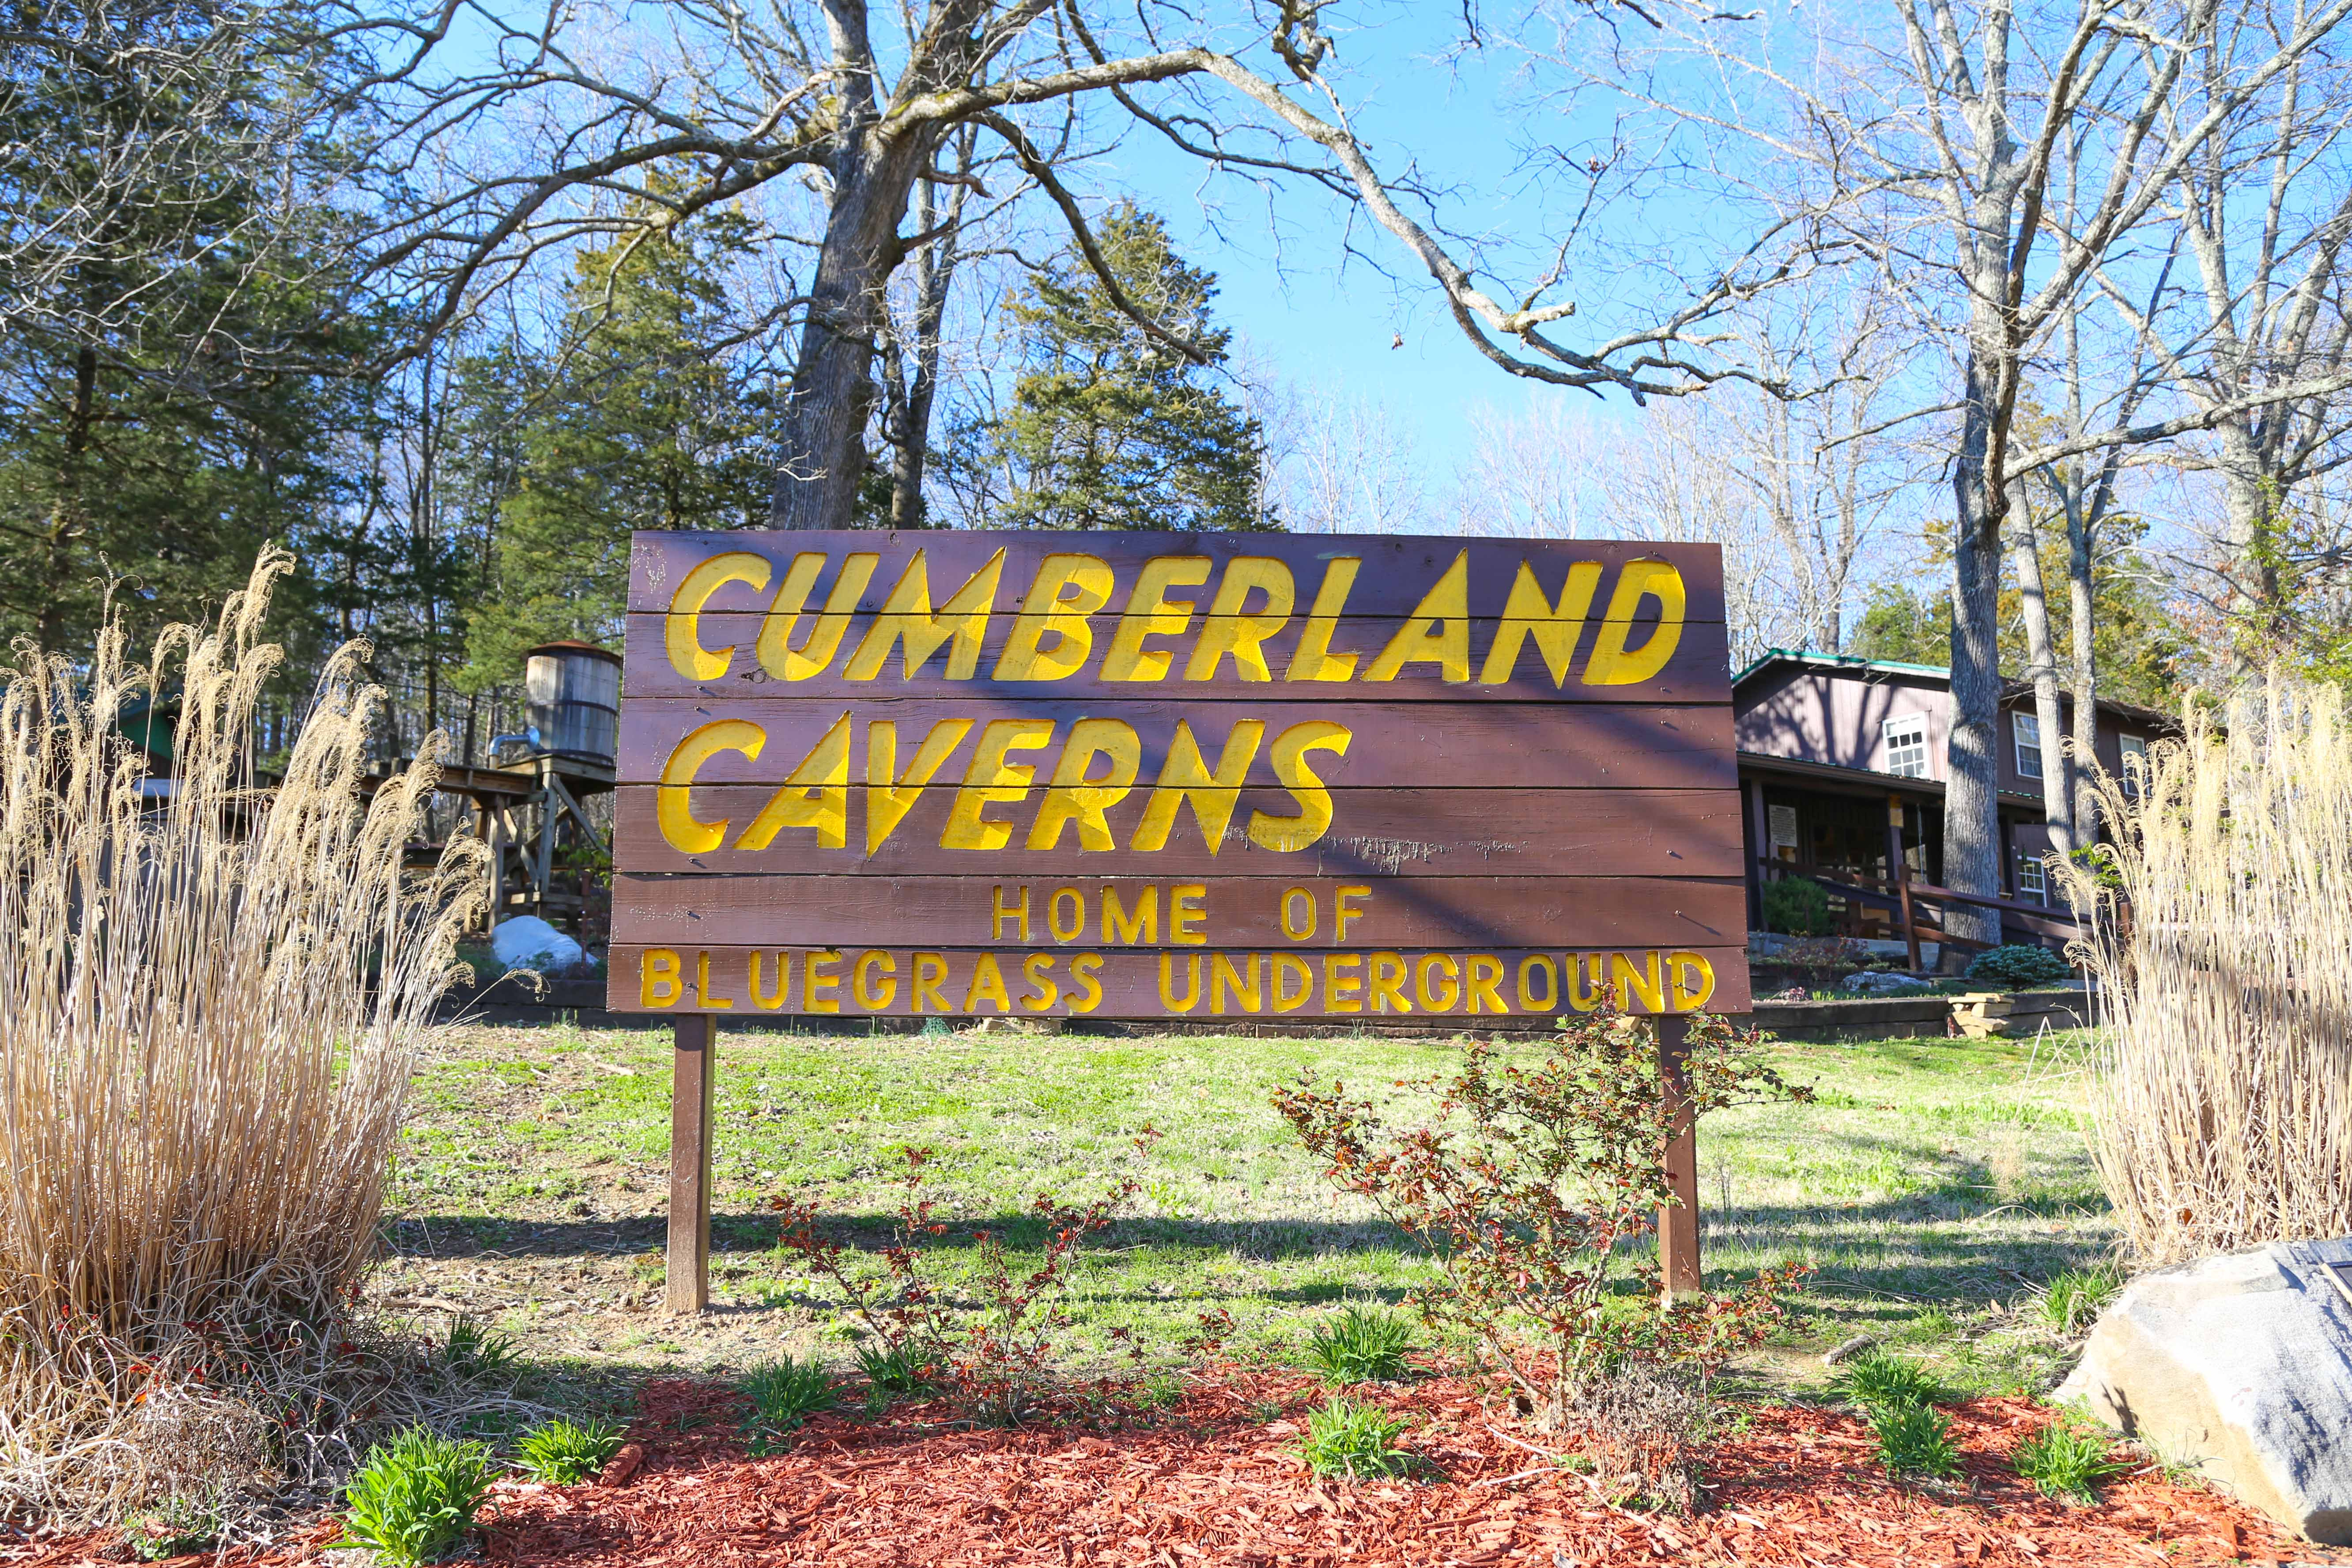 Bluegrass Underground, deep in the belly of a Tennessee cave, is one of the most surreal concerts you'll ever experience.